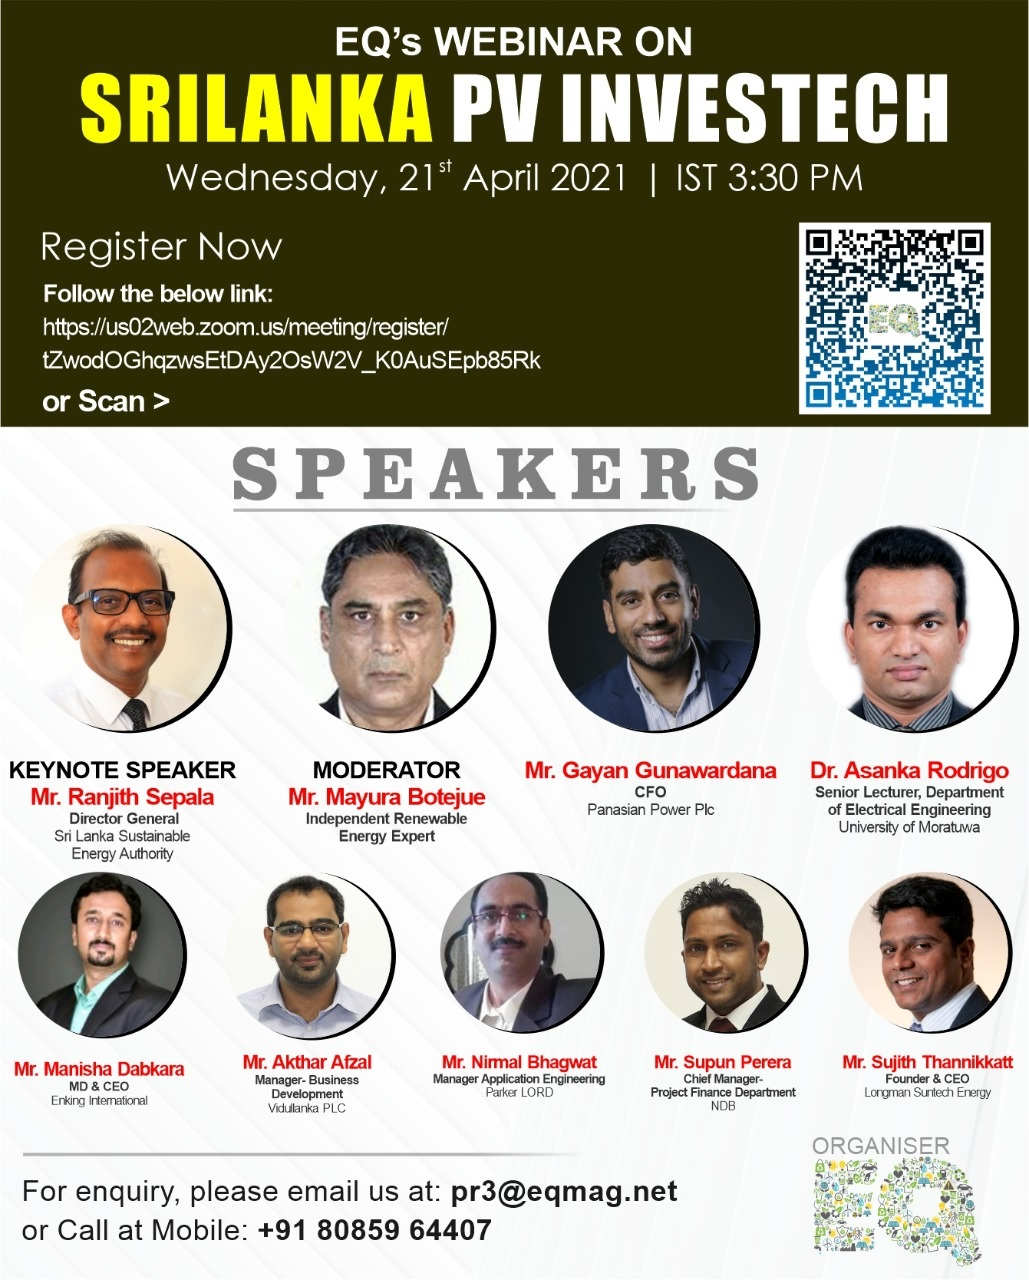 EQ Sri Lanka PV InvesTech on Wednesday April 21st from 03:30 PM Onwards….Register Now !!!